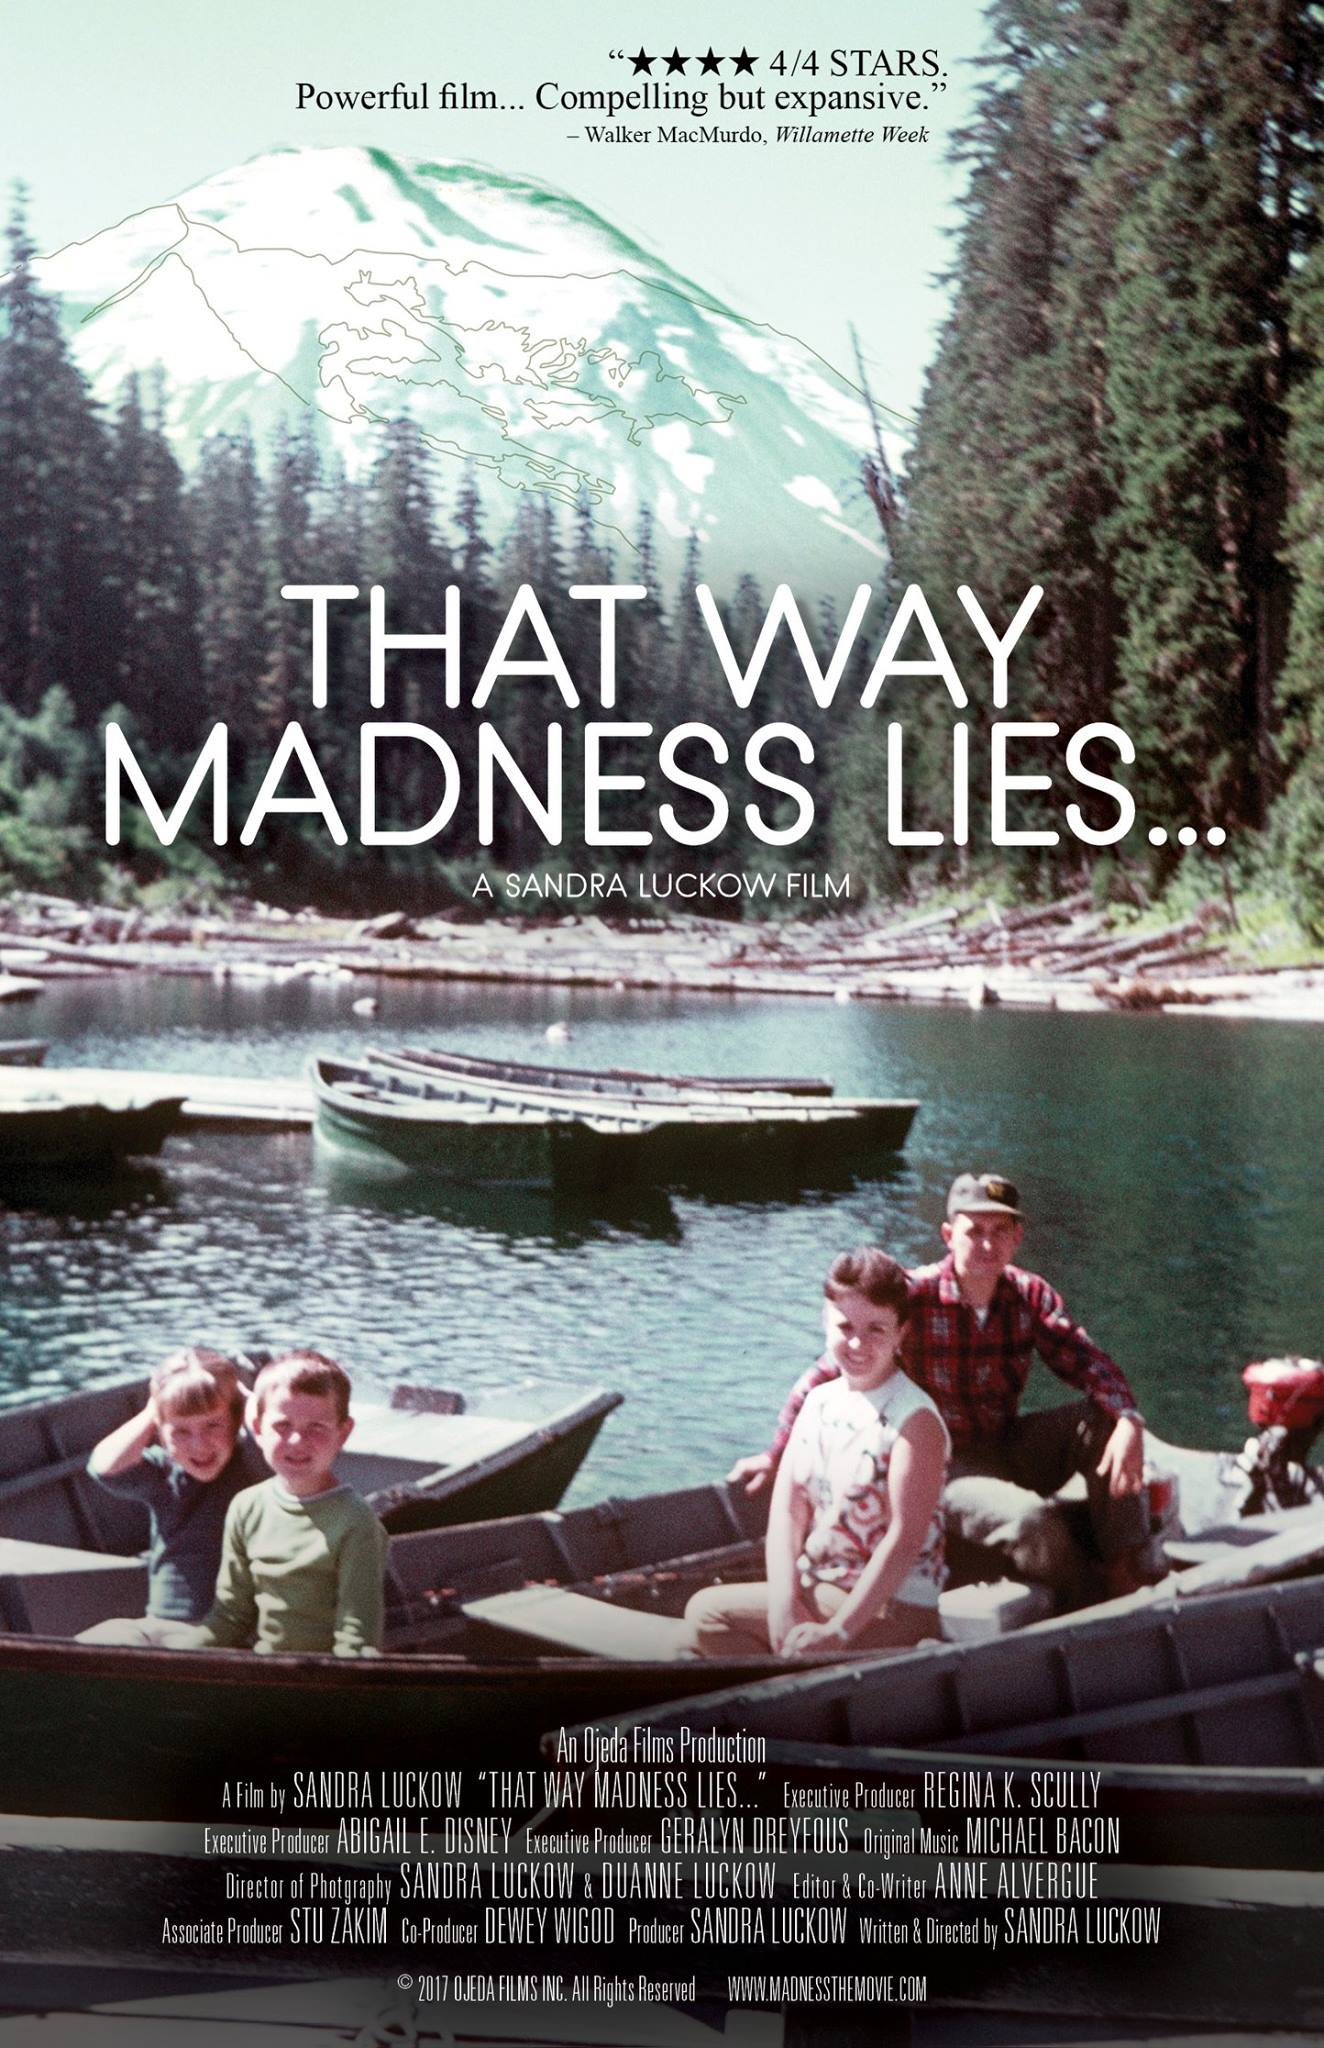 THAT WAY MADNESS LIES…, - a feature length documentary about mental illness and its effects on a family, their struggles with the mental health system and the law enforcement system, has been accepted to the Beacon Independent Film Festival taking place in Beacon, NY from Sept. 15 – 17, 2017. http://www.madnessthemovie.com/press.htmlhttp://beaconindiefilmfest.org/